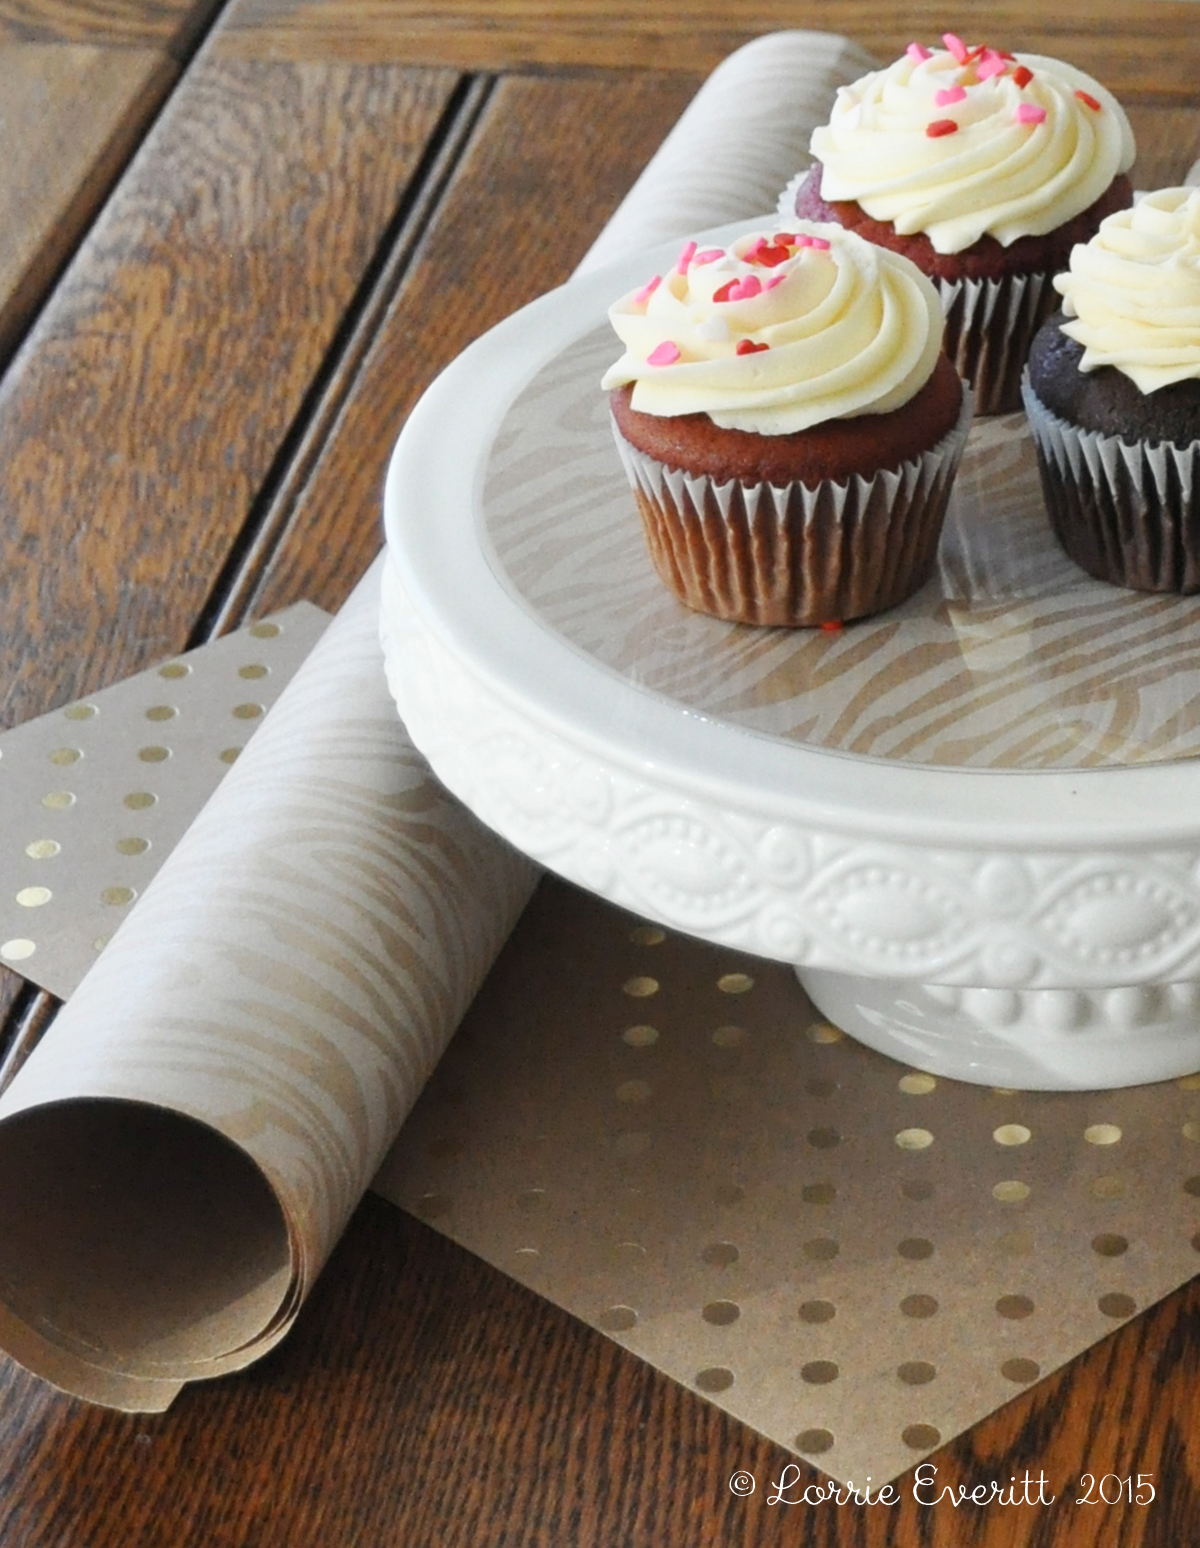 diy decorative cake stand liners | Lorrie Everitt Studio